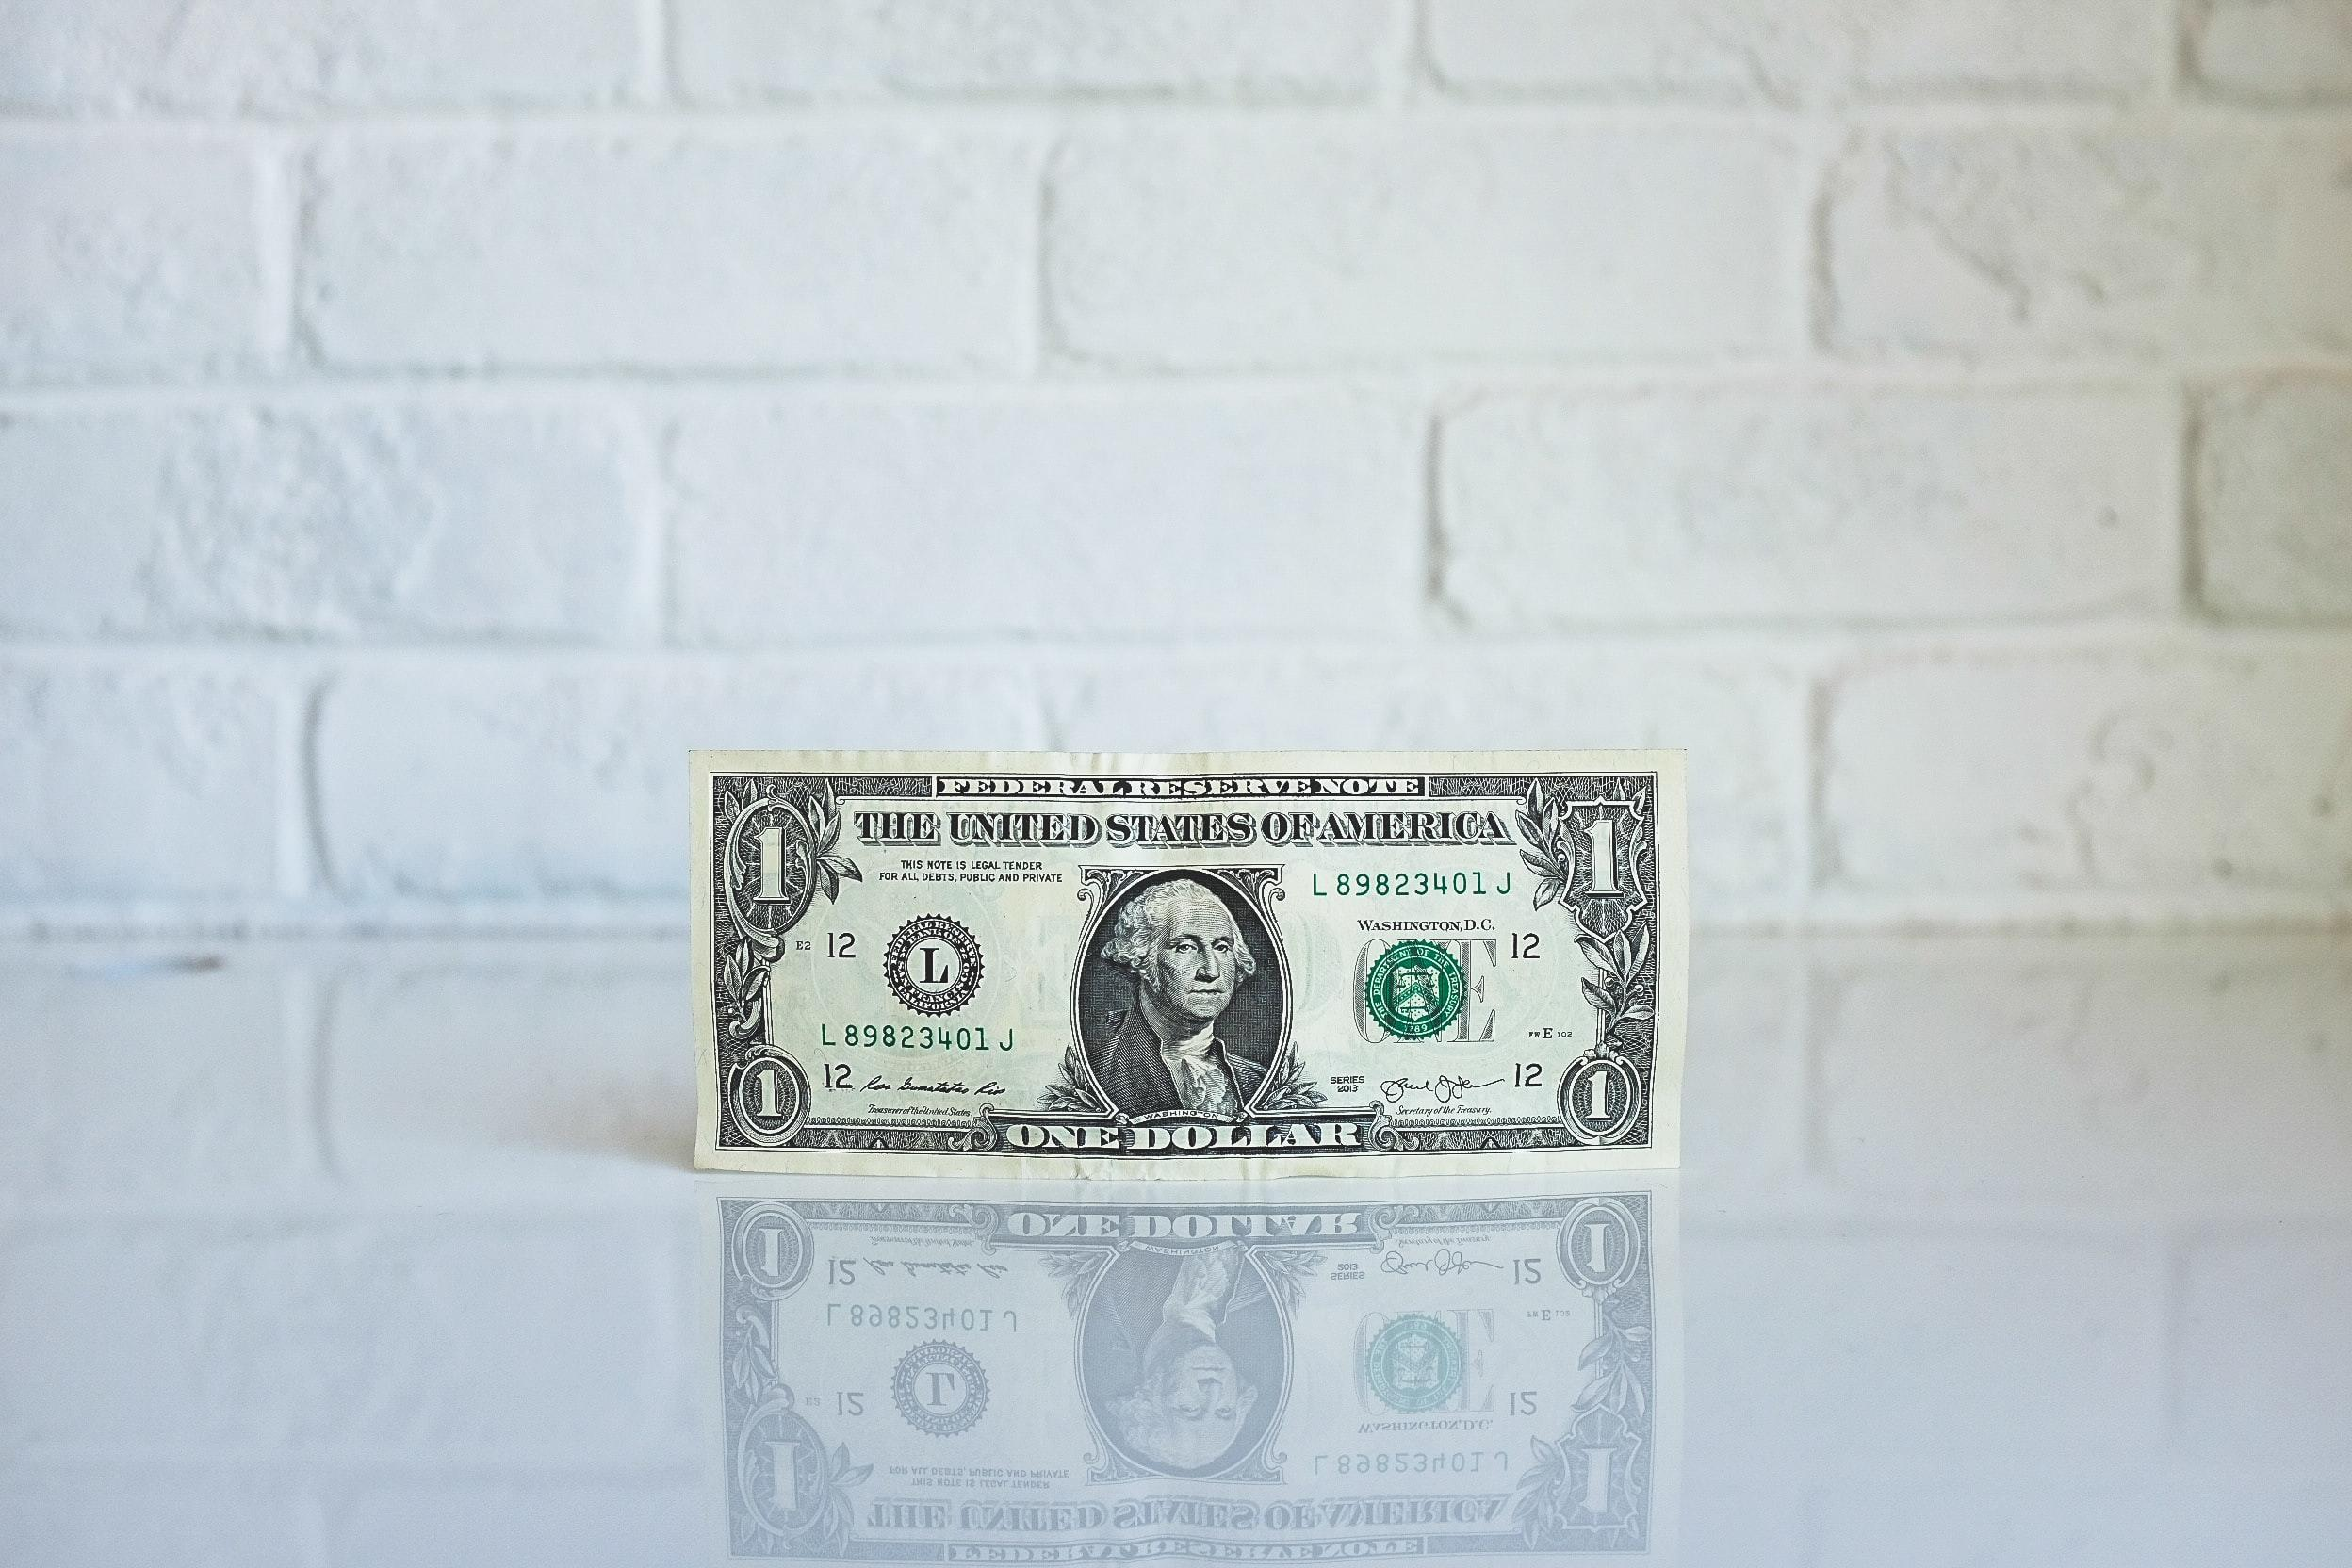 In the Interest of Transparency: My Personal Finances and Approach to Money